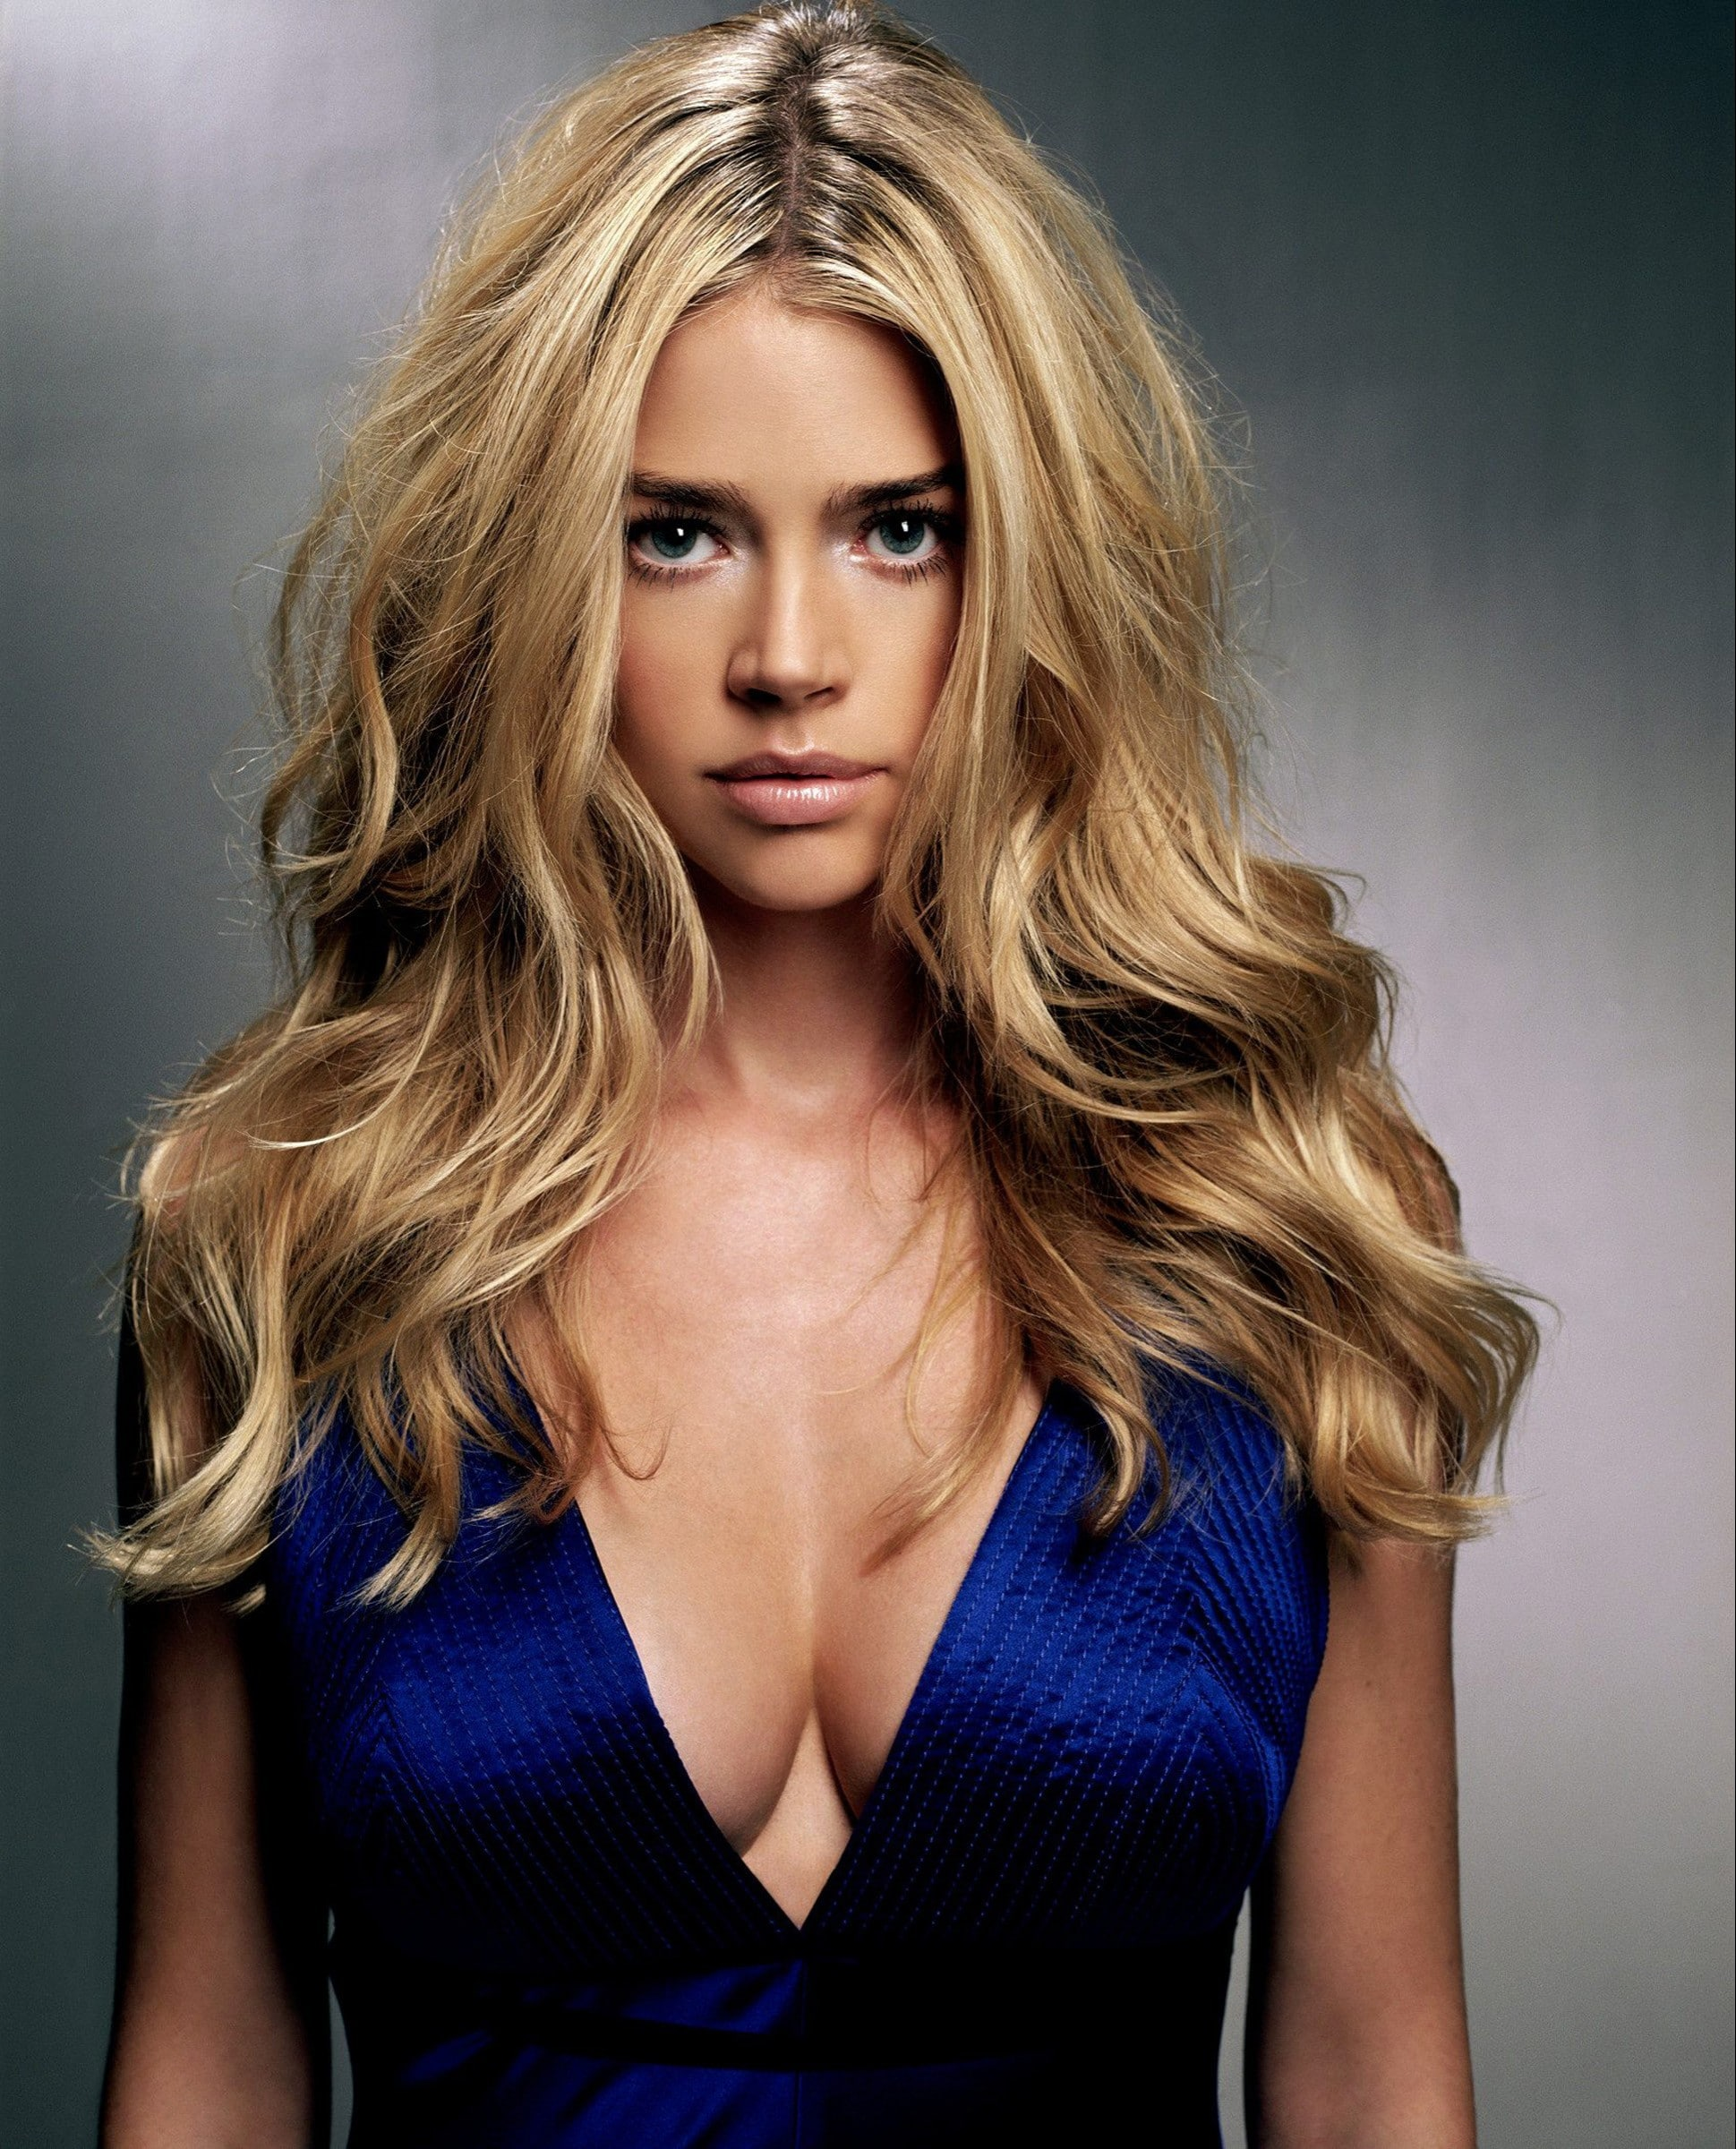 Denise richards on Photoshoot